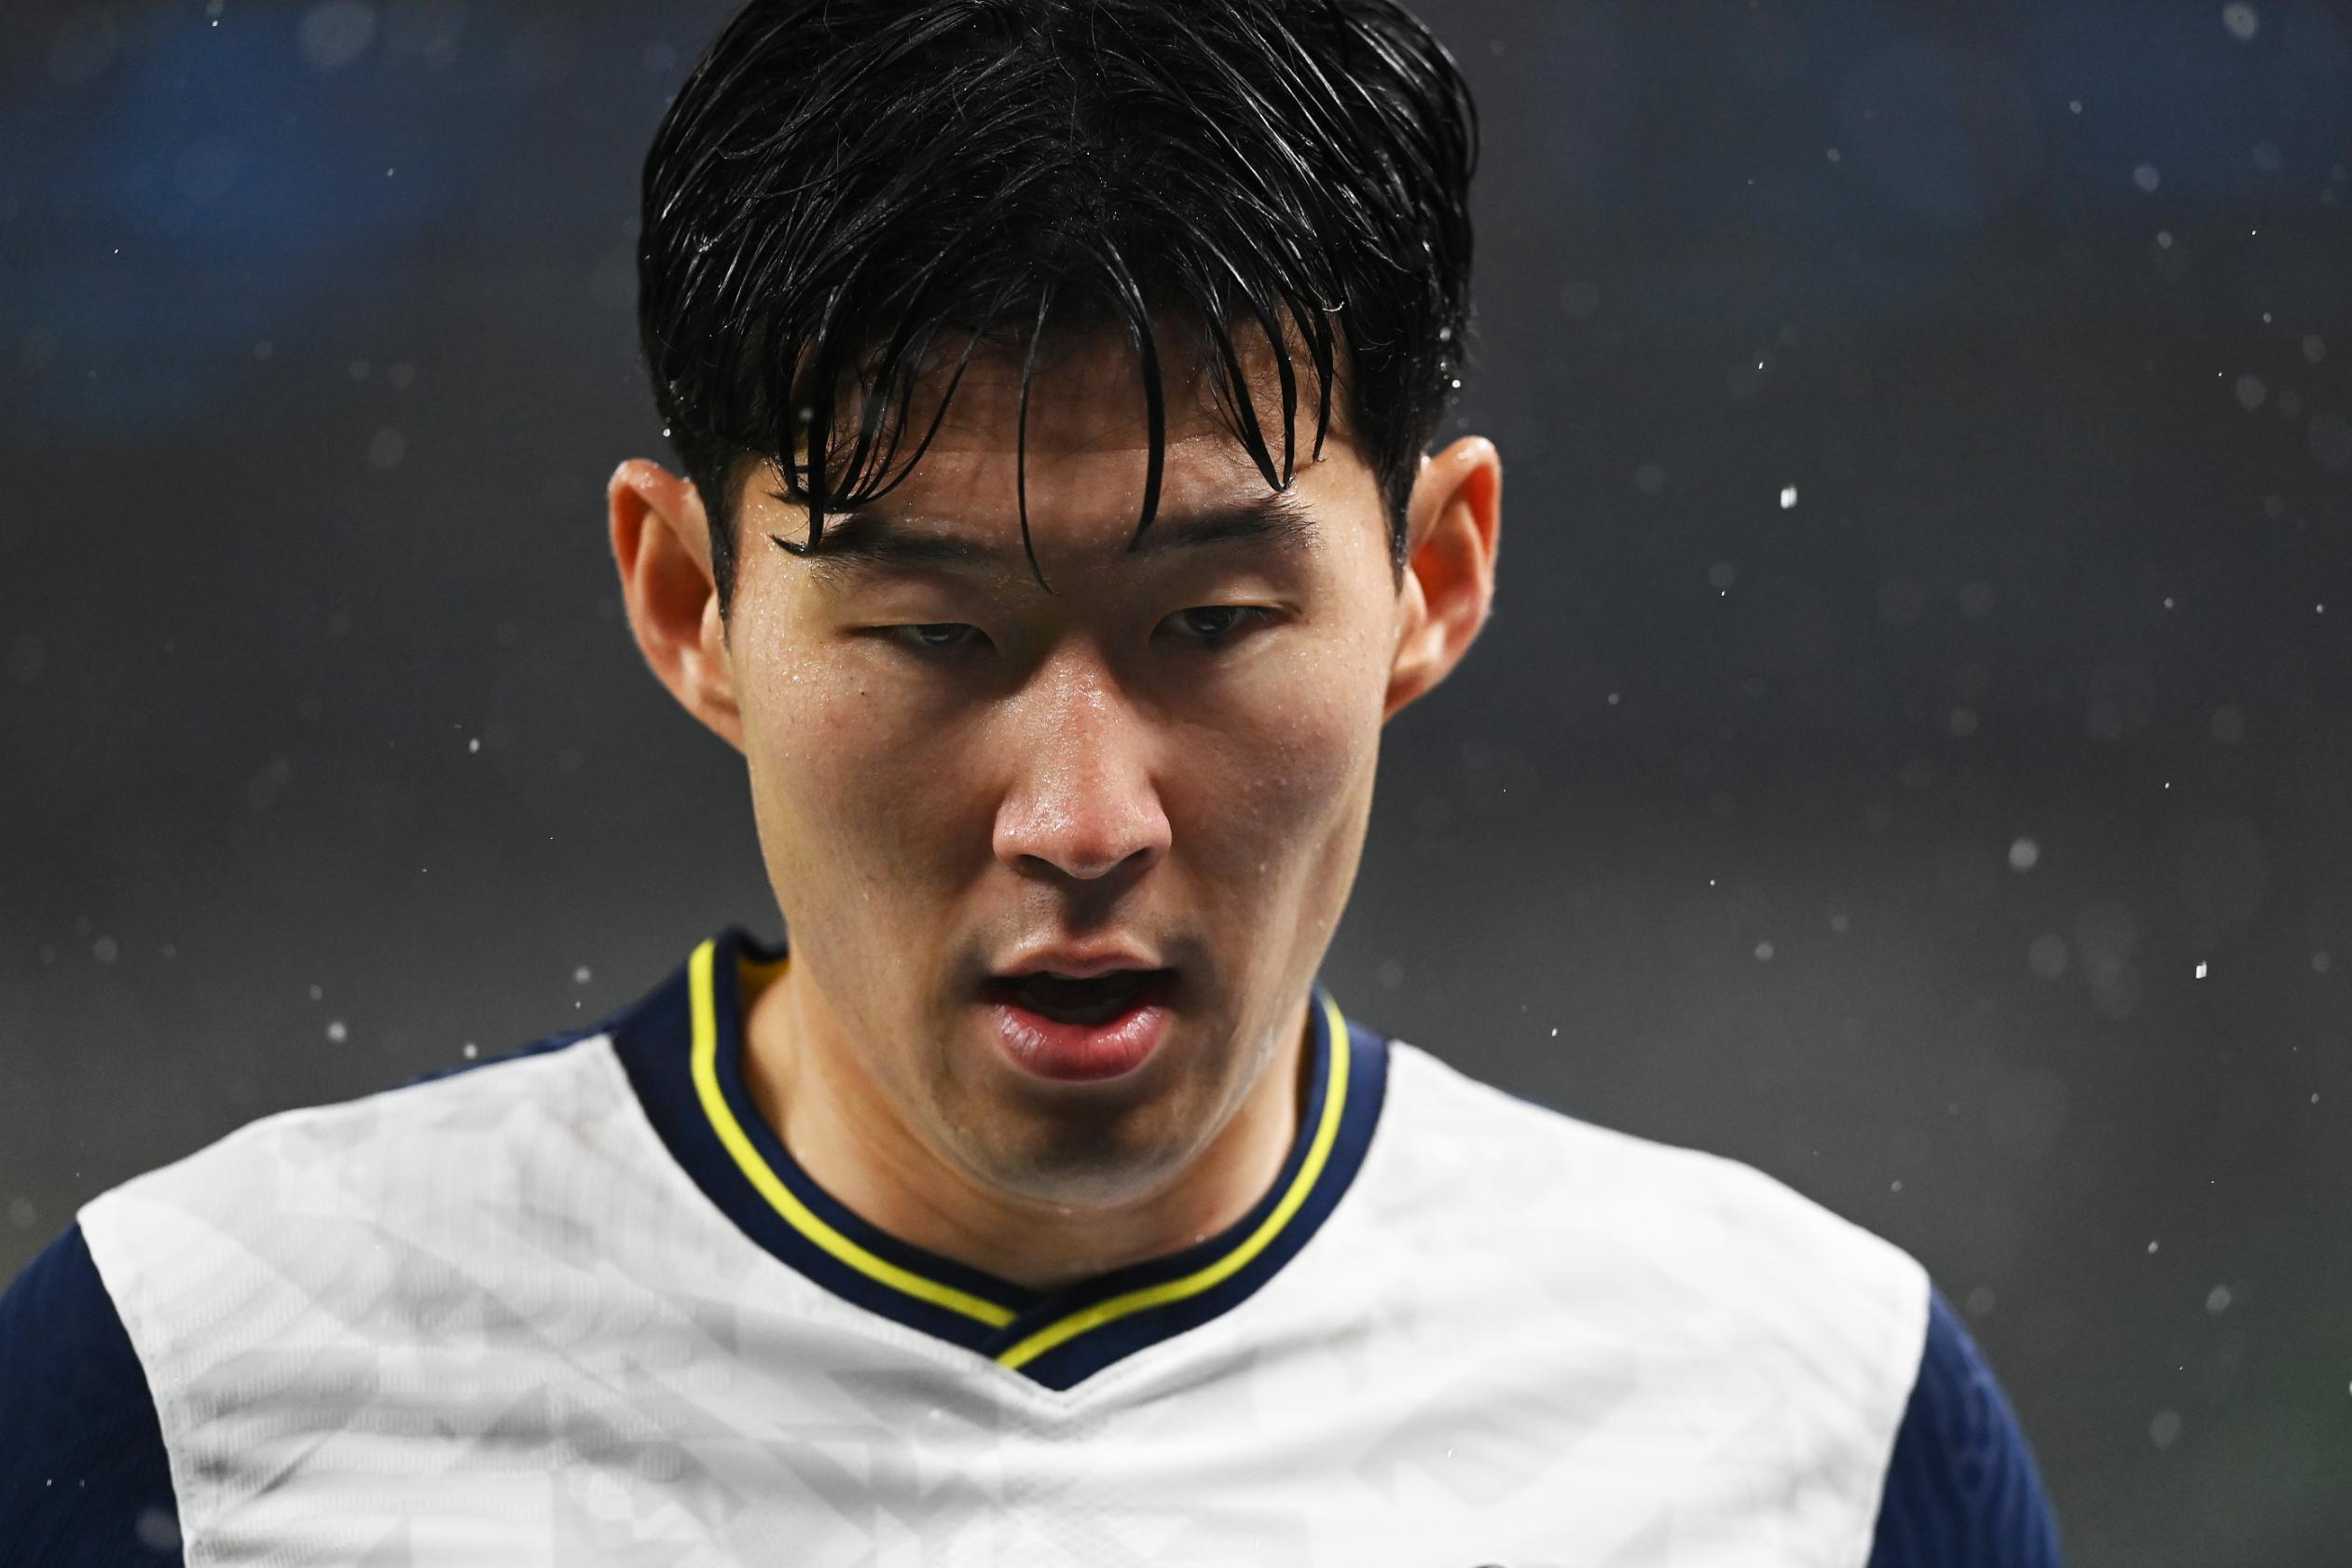 Tottenham star Son Heung-Min racially abused online after Premier League defeat